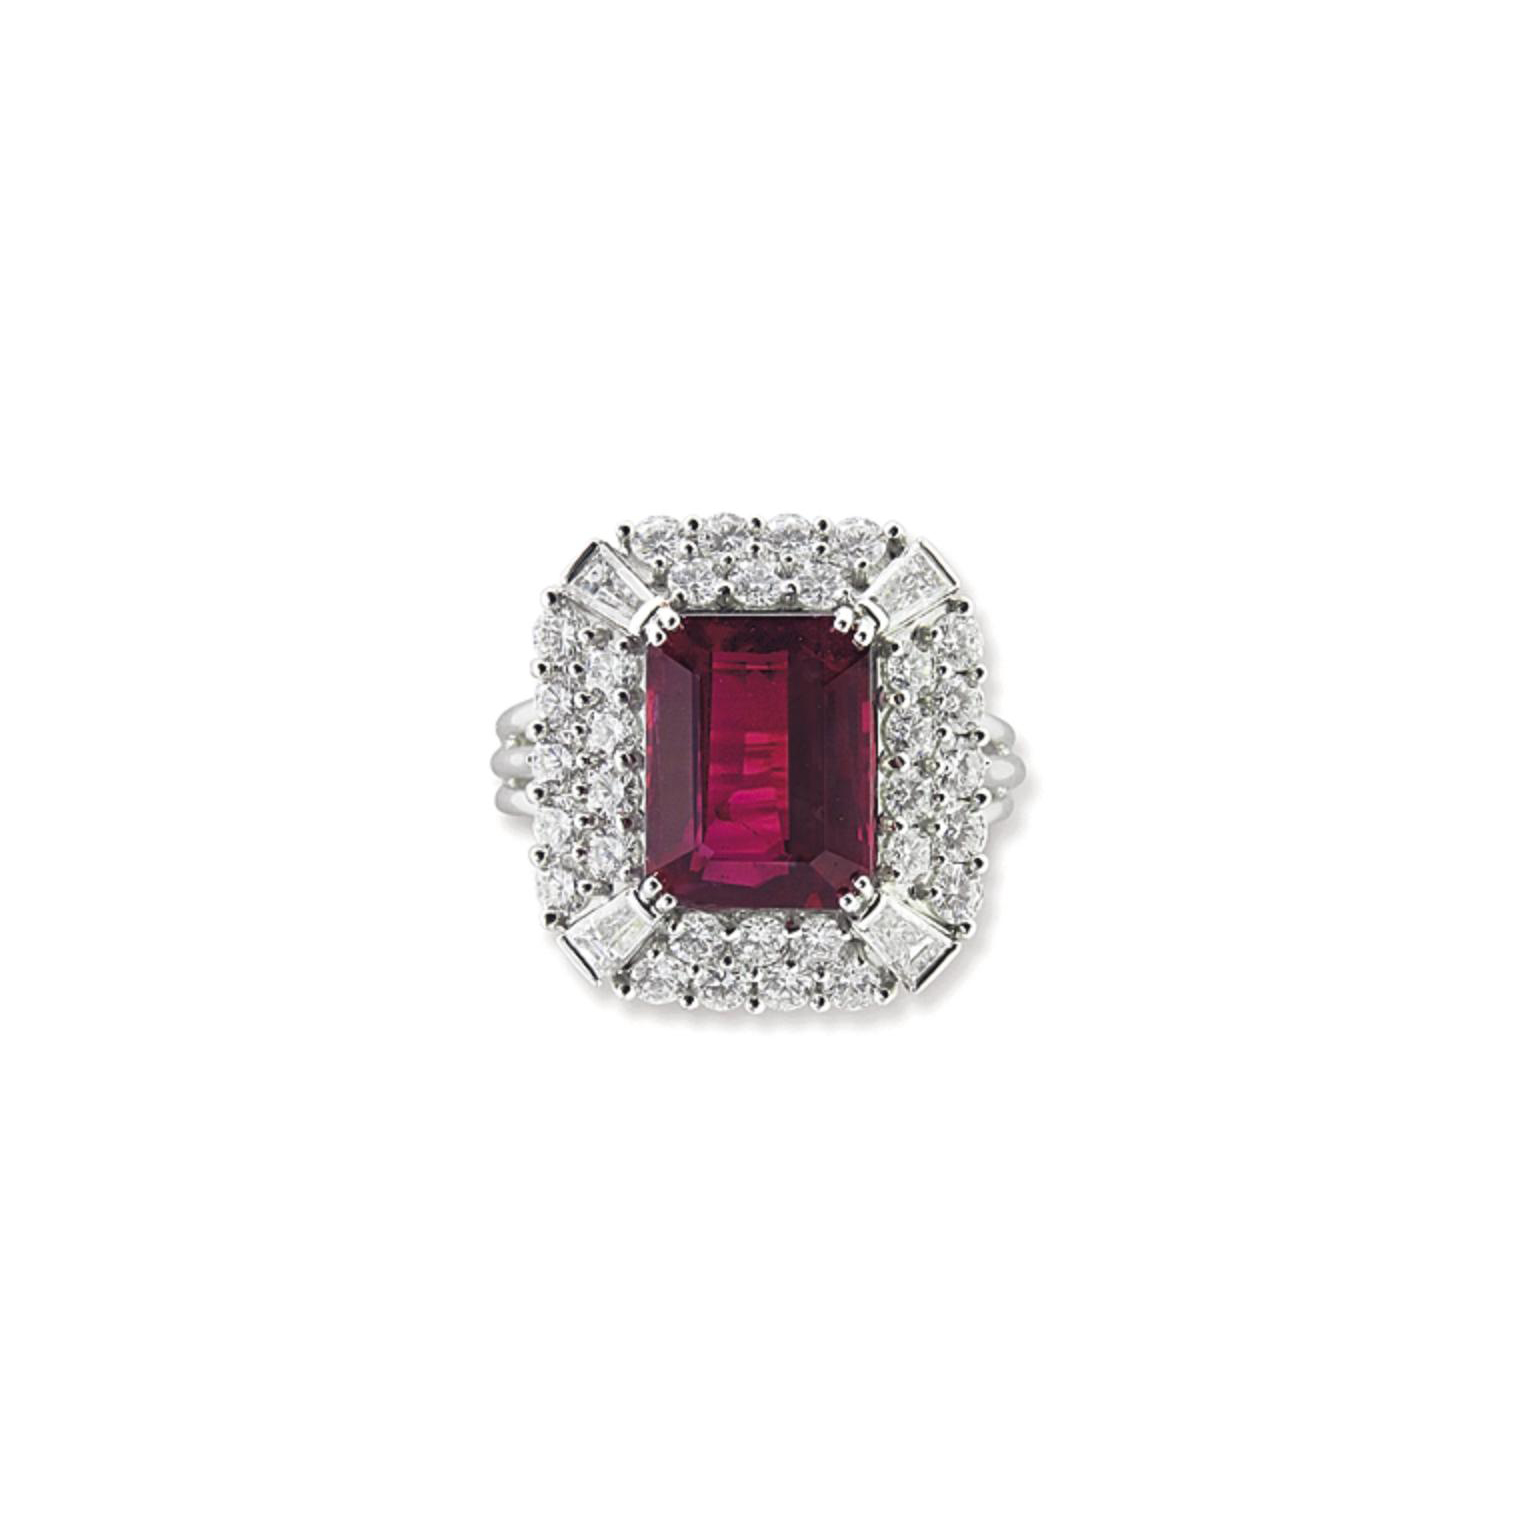 A RUBY AND DIAMOND RING, BY PA